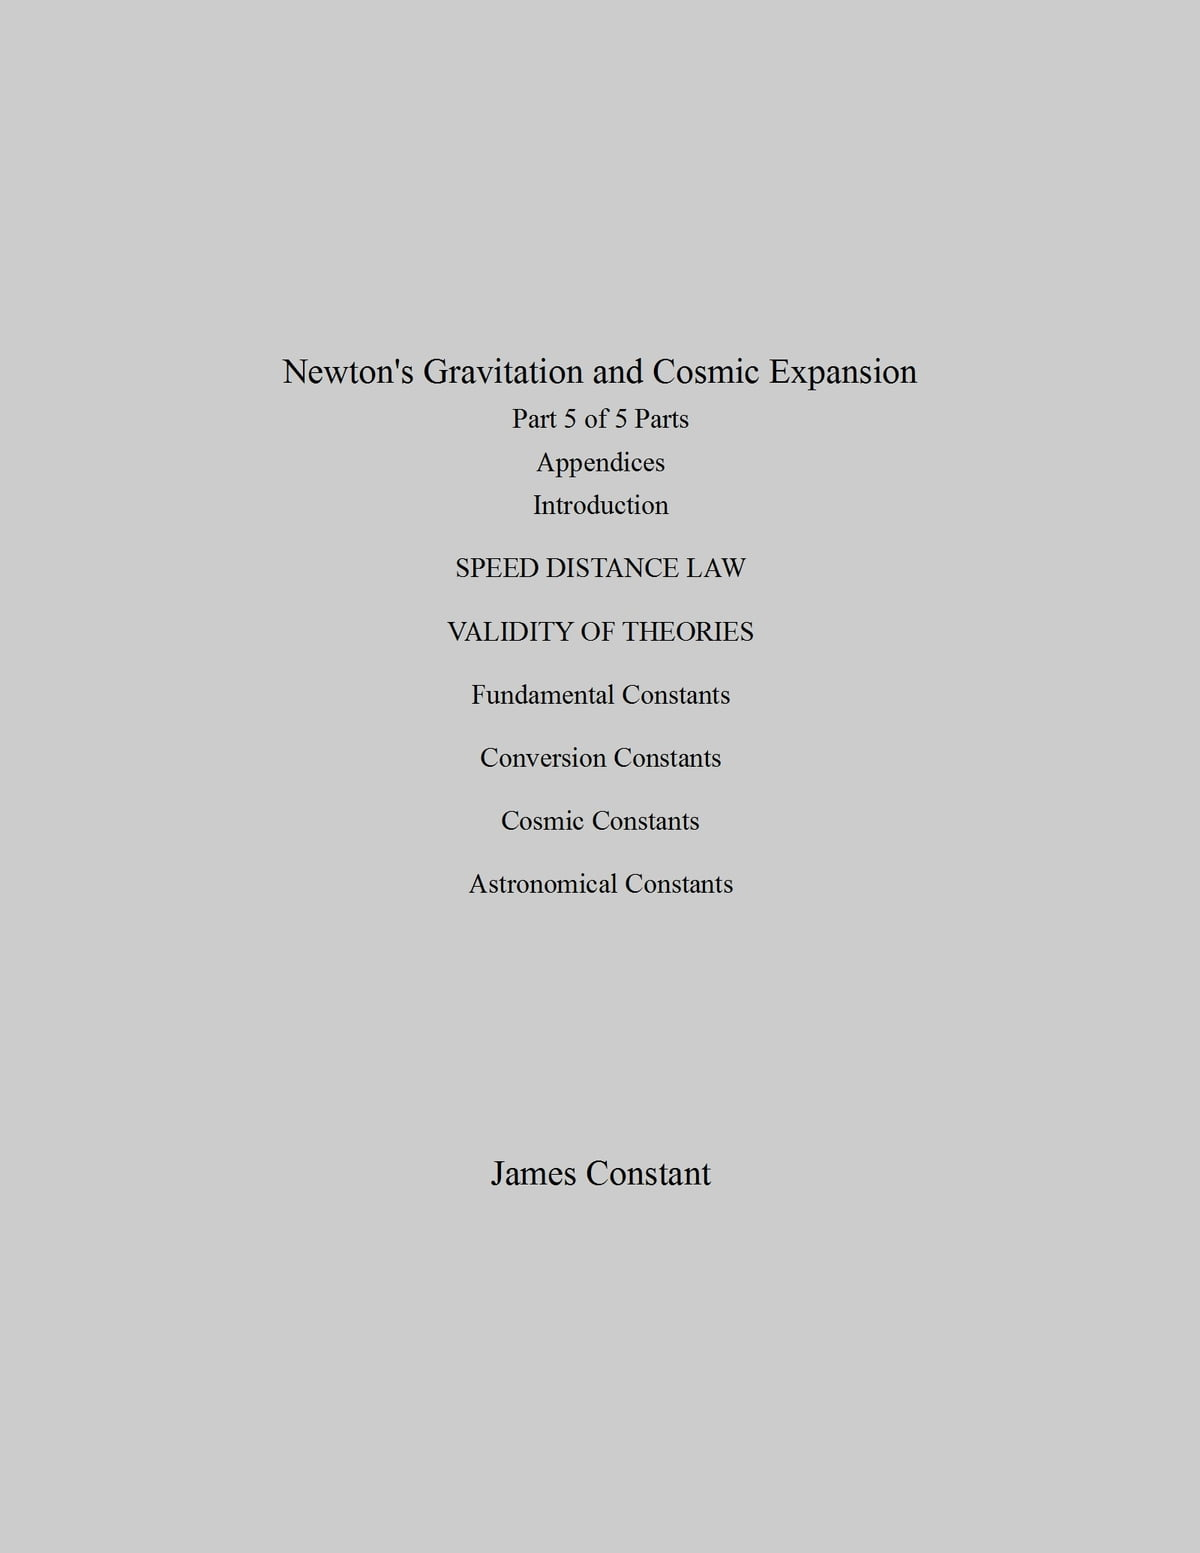 Newtons Gravitation And Cosmic Expansion V Appendices Ebook By